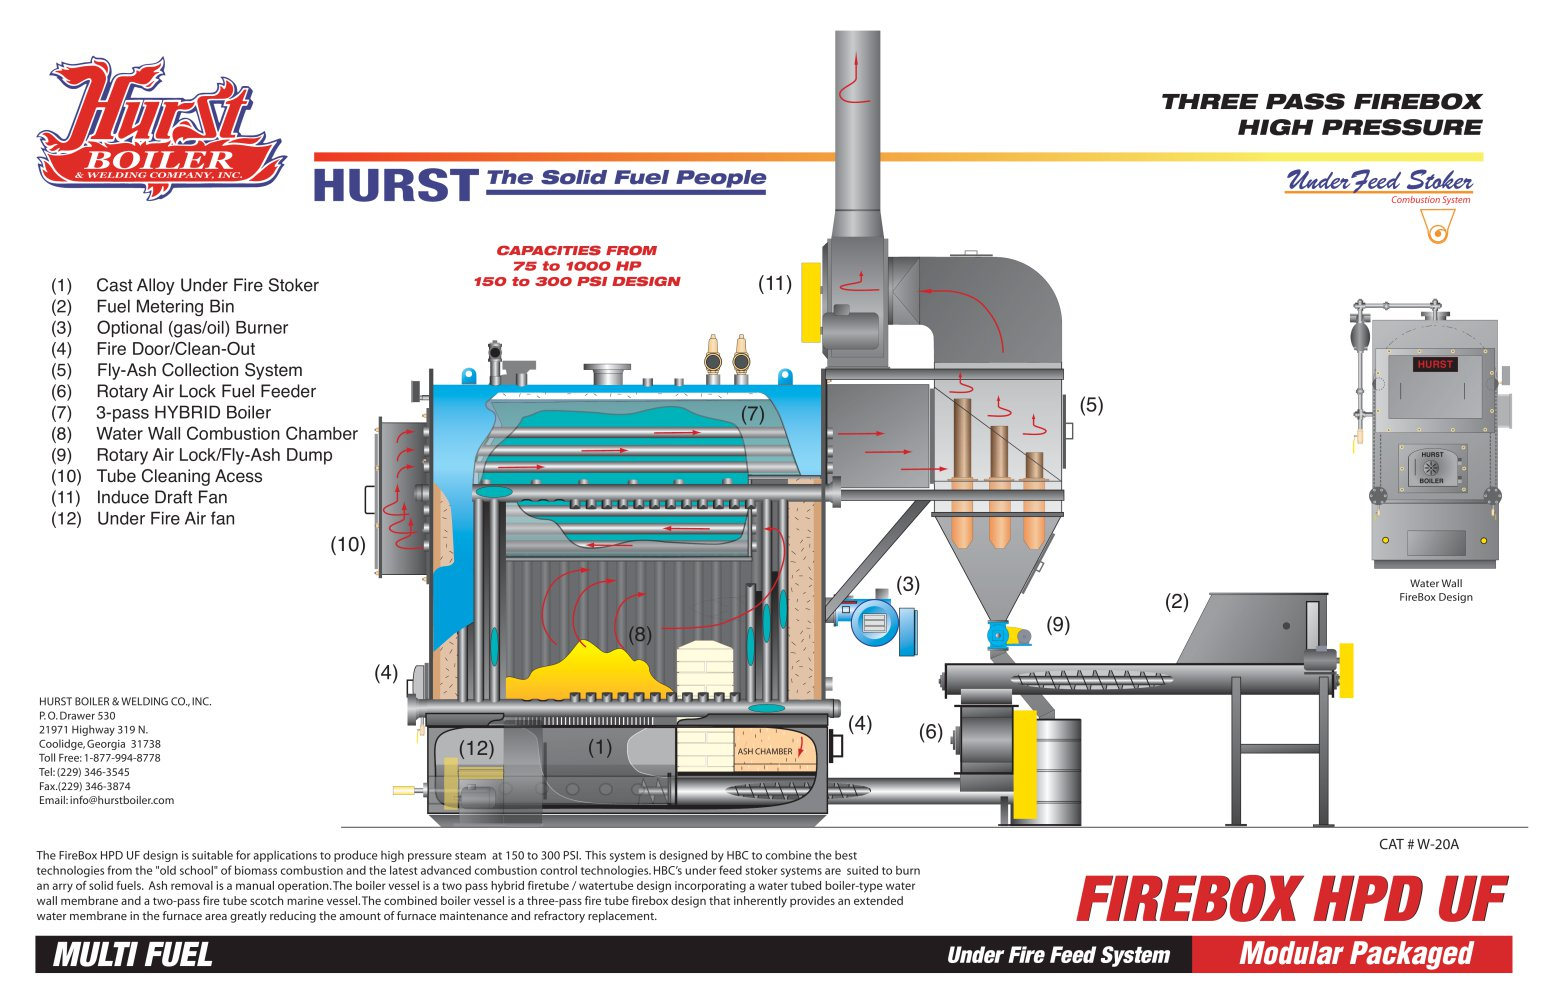 Wood 20a firebox hpd uf hurst boiler welding co inc pdf wood 20a firebox hpd uf 1 1 pages pooptronica